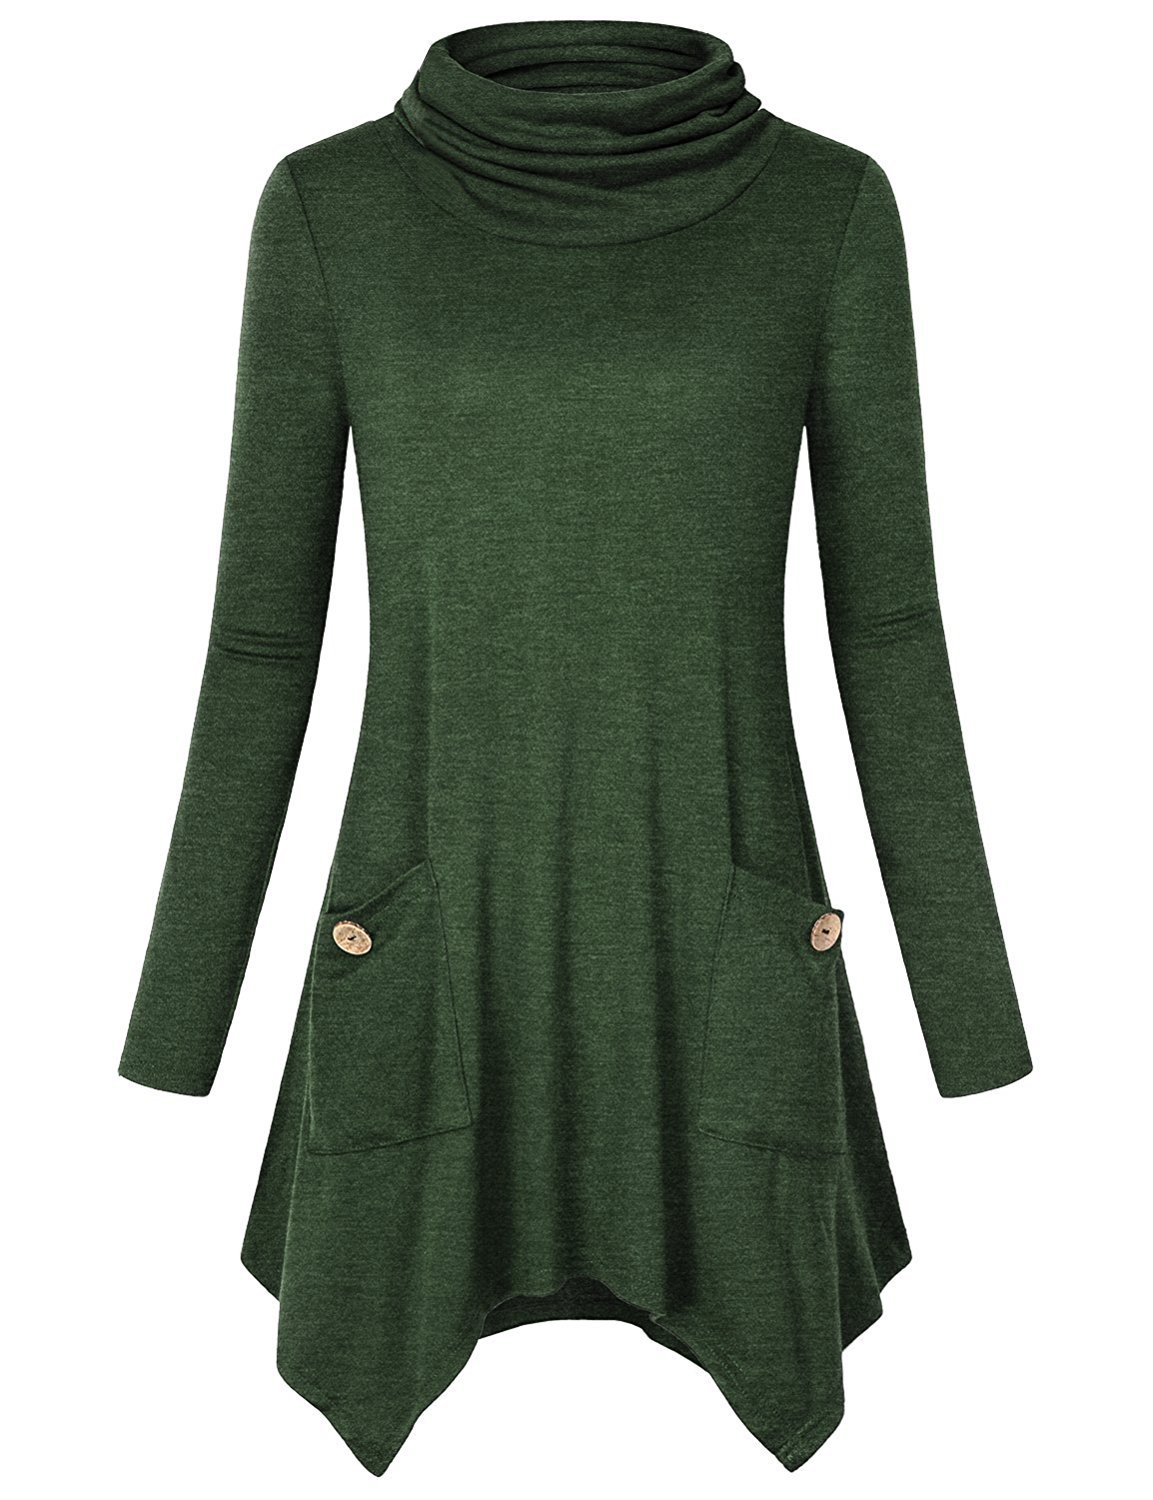 Anna Smith Ladies Tops to Wear with Leggings, Women Long Sleeve Tunic Cowl Neck Knitwear Form Fitting Tees Swing Cute Simple Sweater Business Casual Flared Hem Blouses with Pockets Green XX-Large